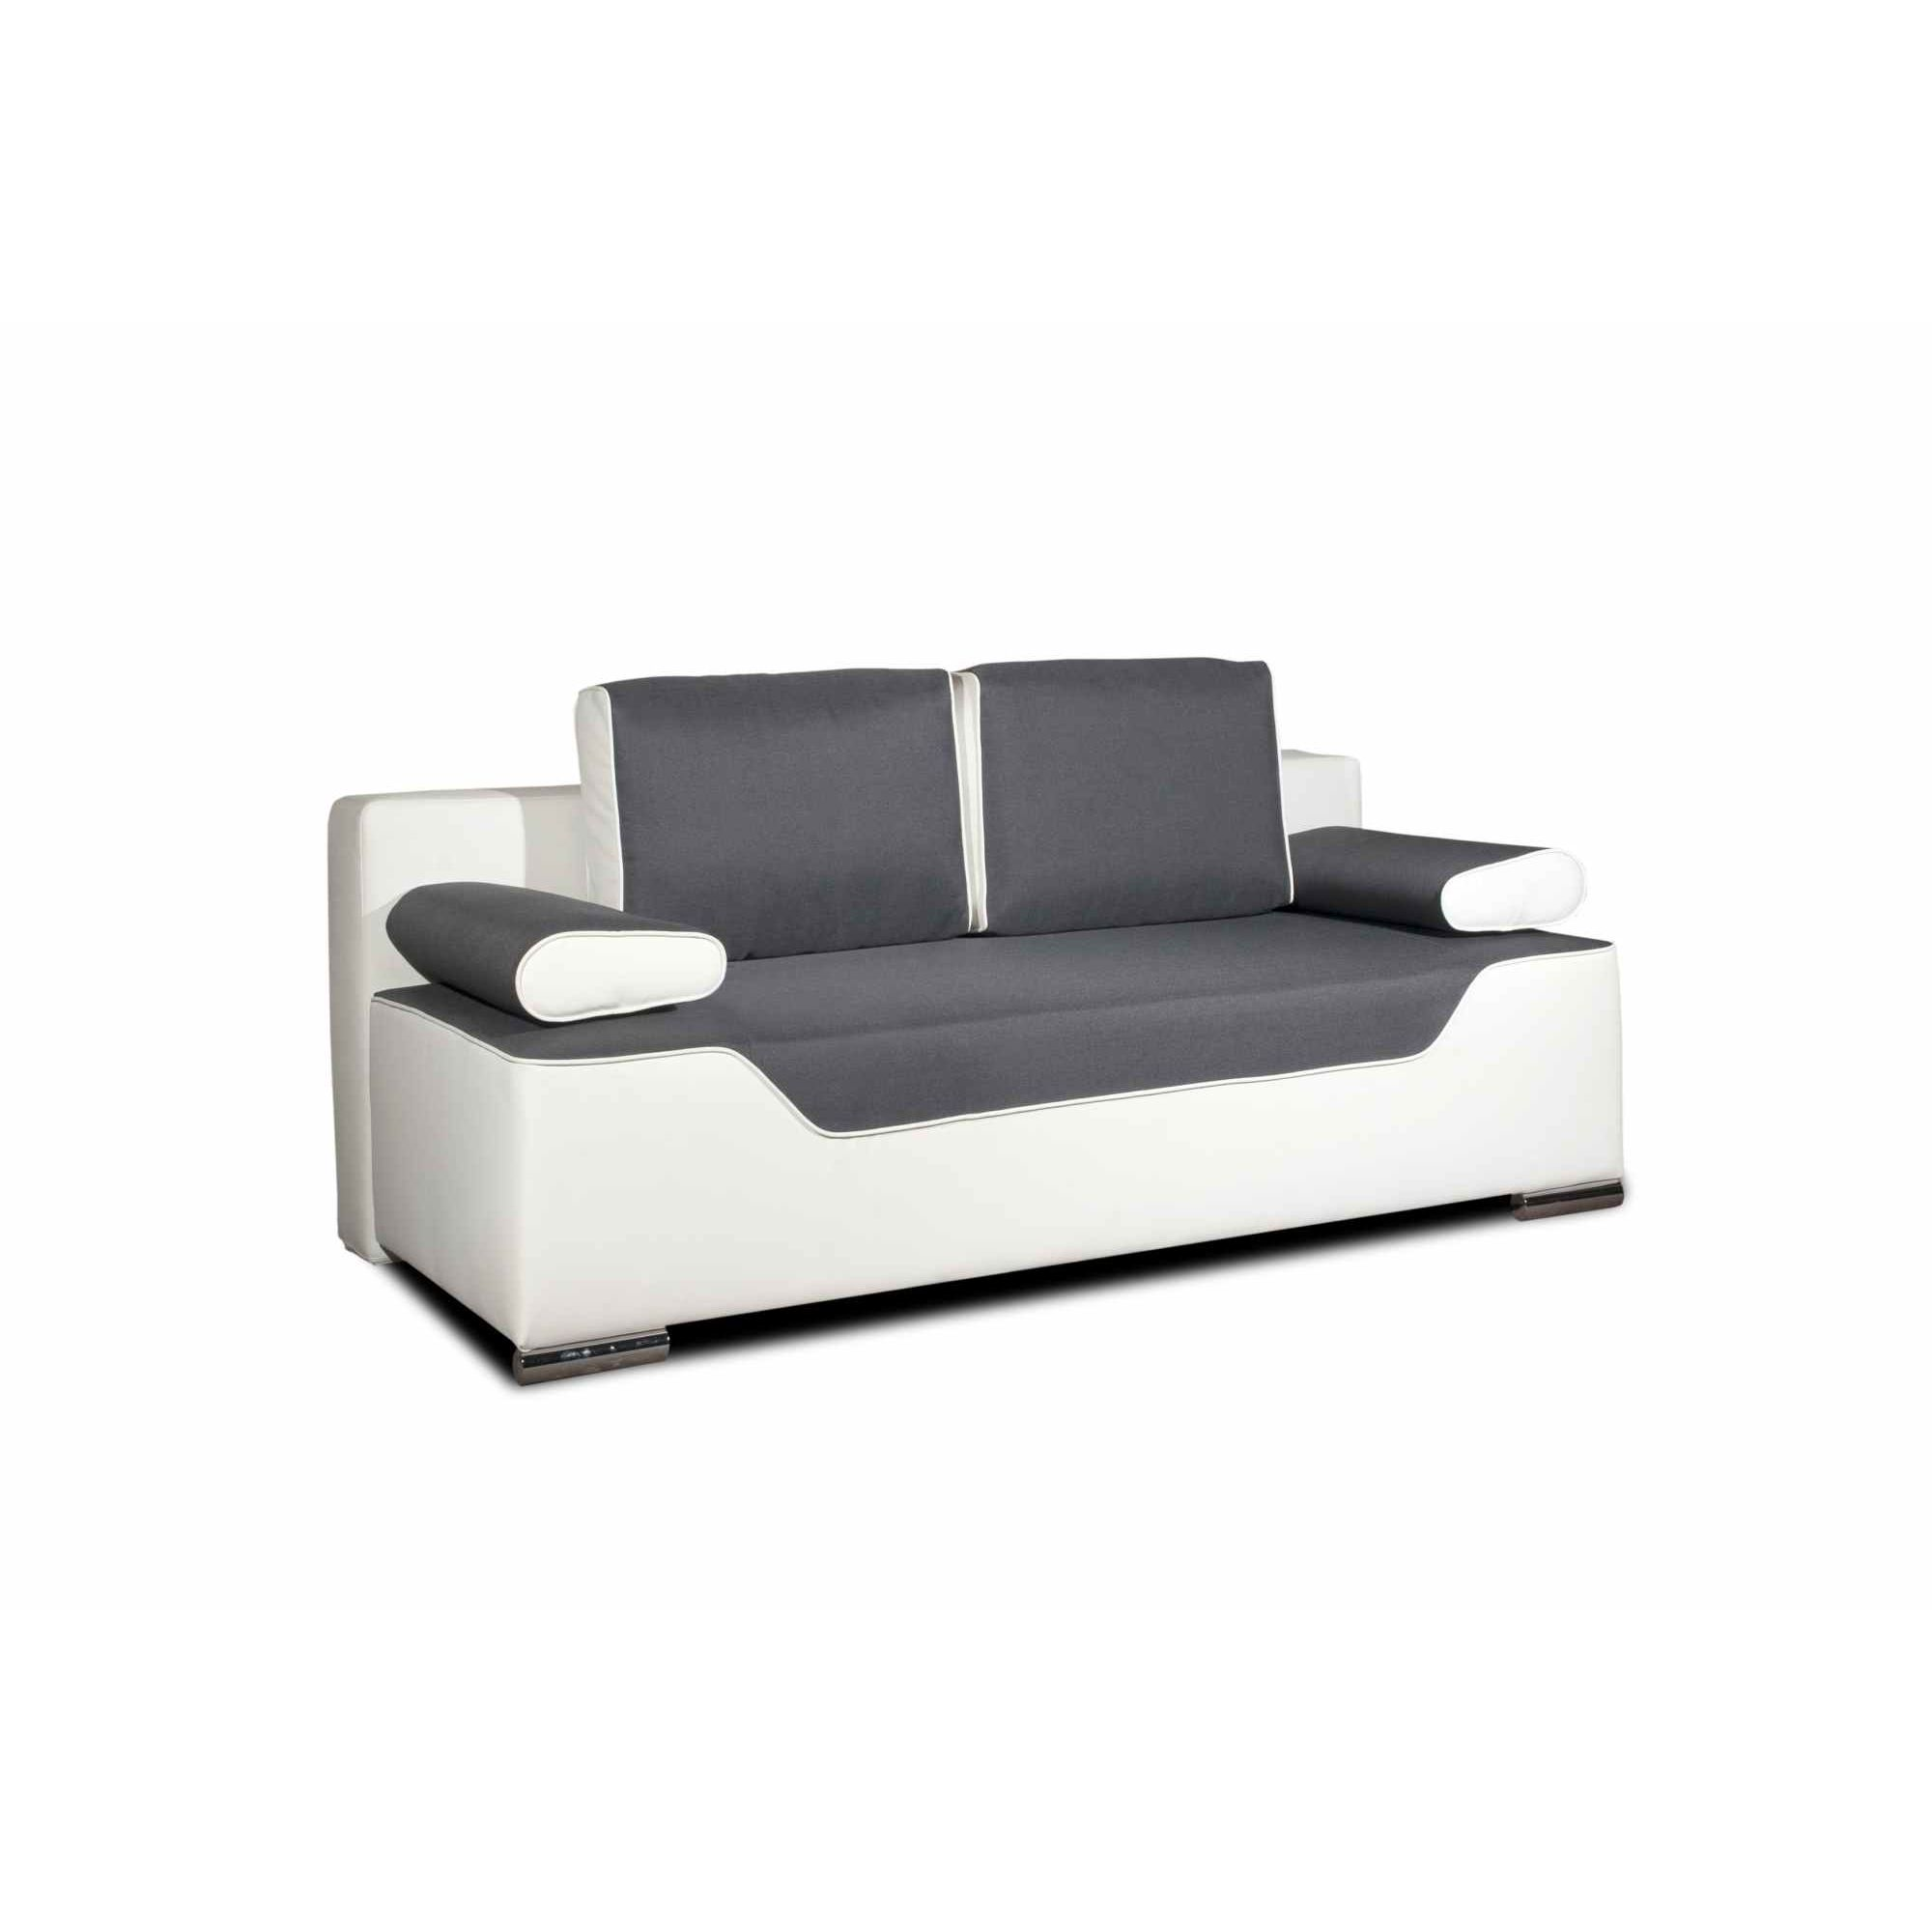 Deco in paris canape 3 places convertible gris et blanc for Canape gris et blanc